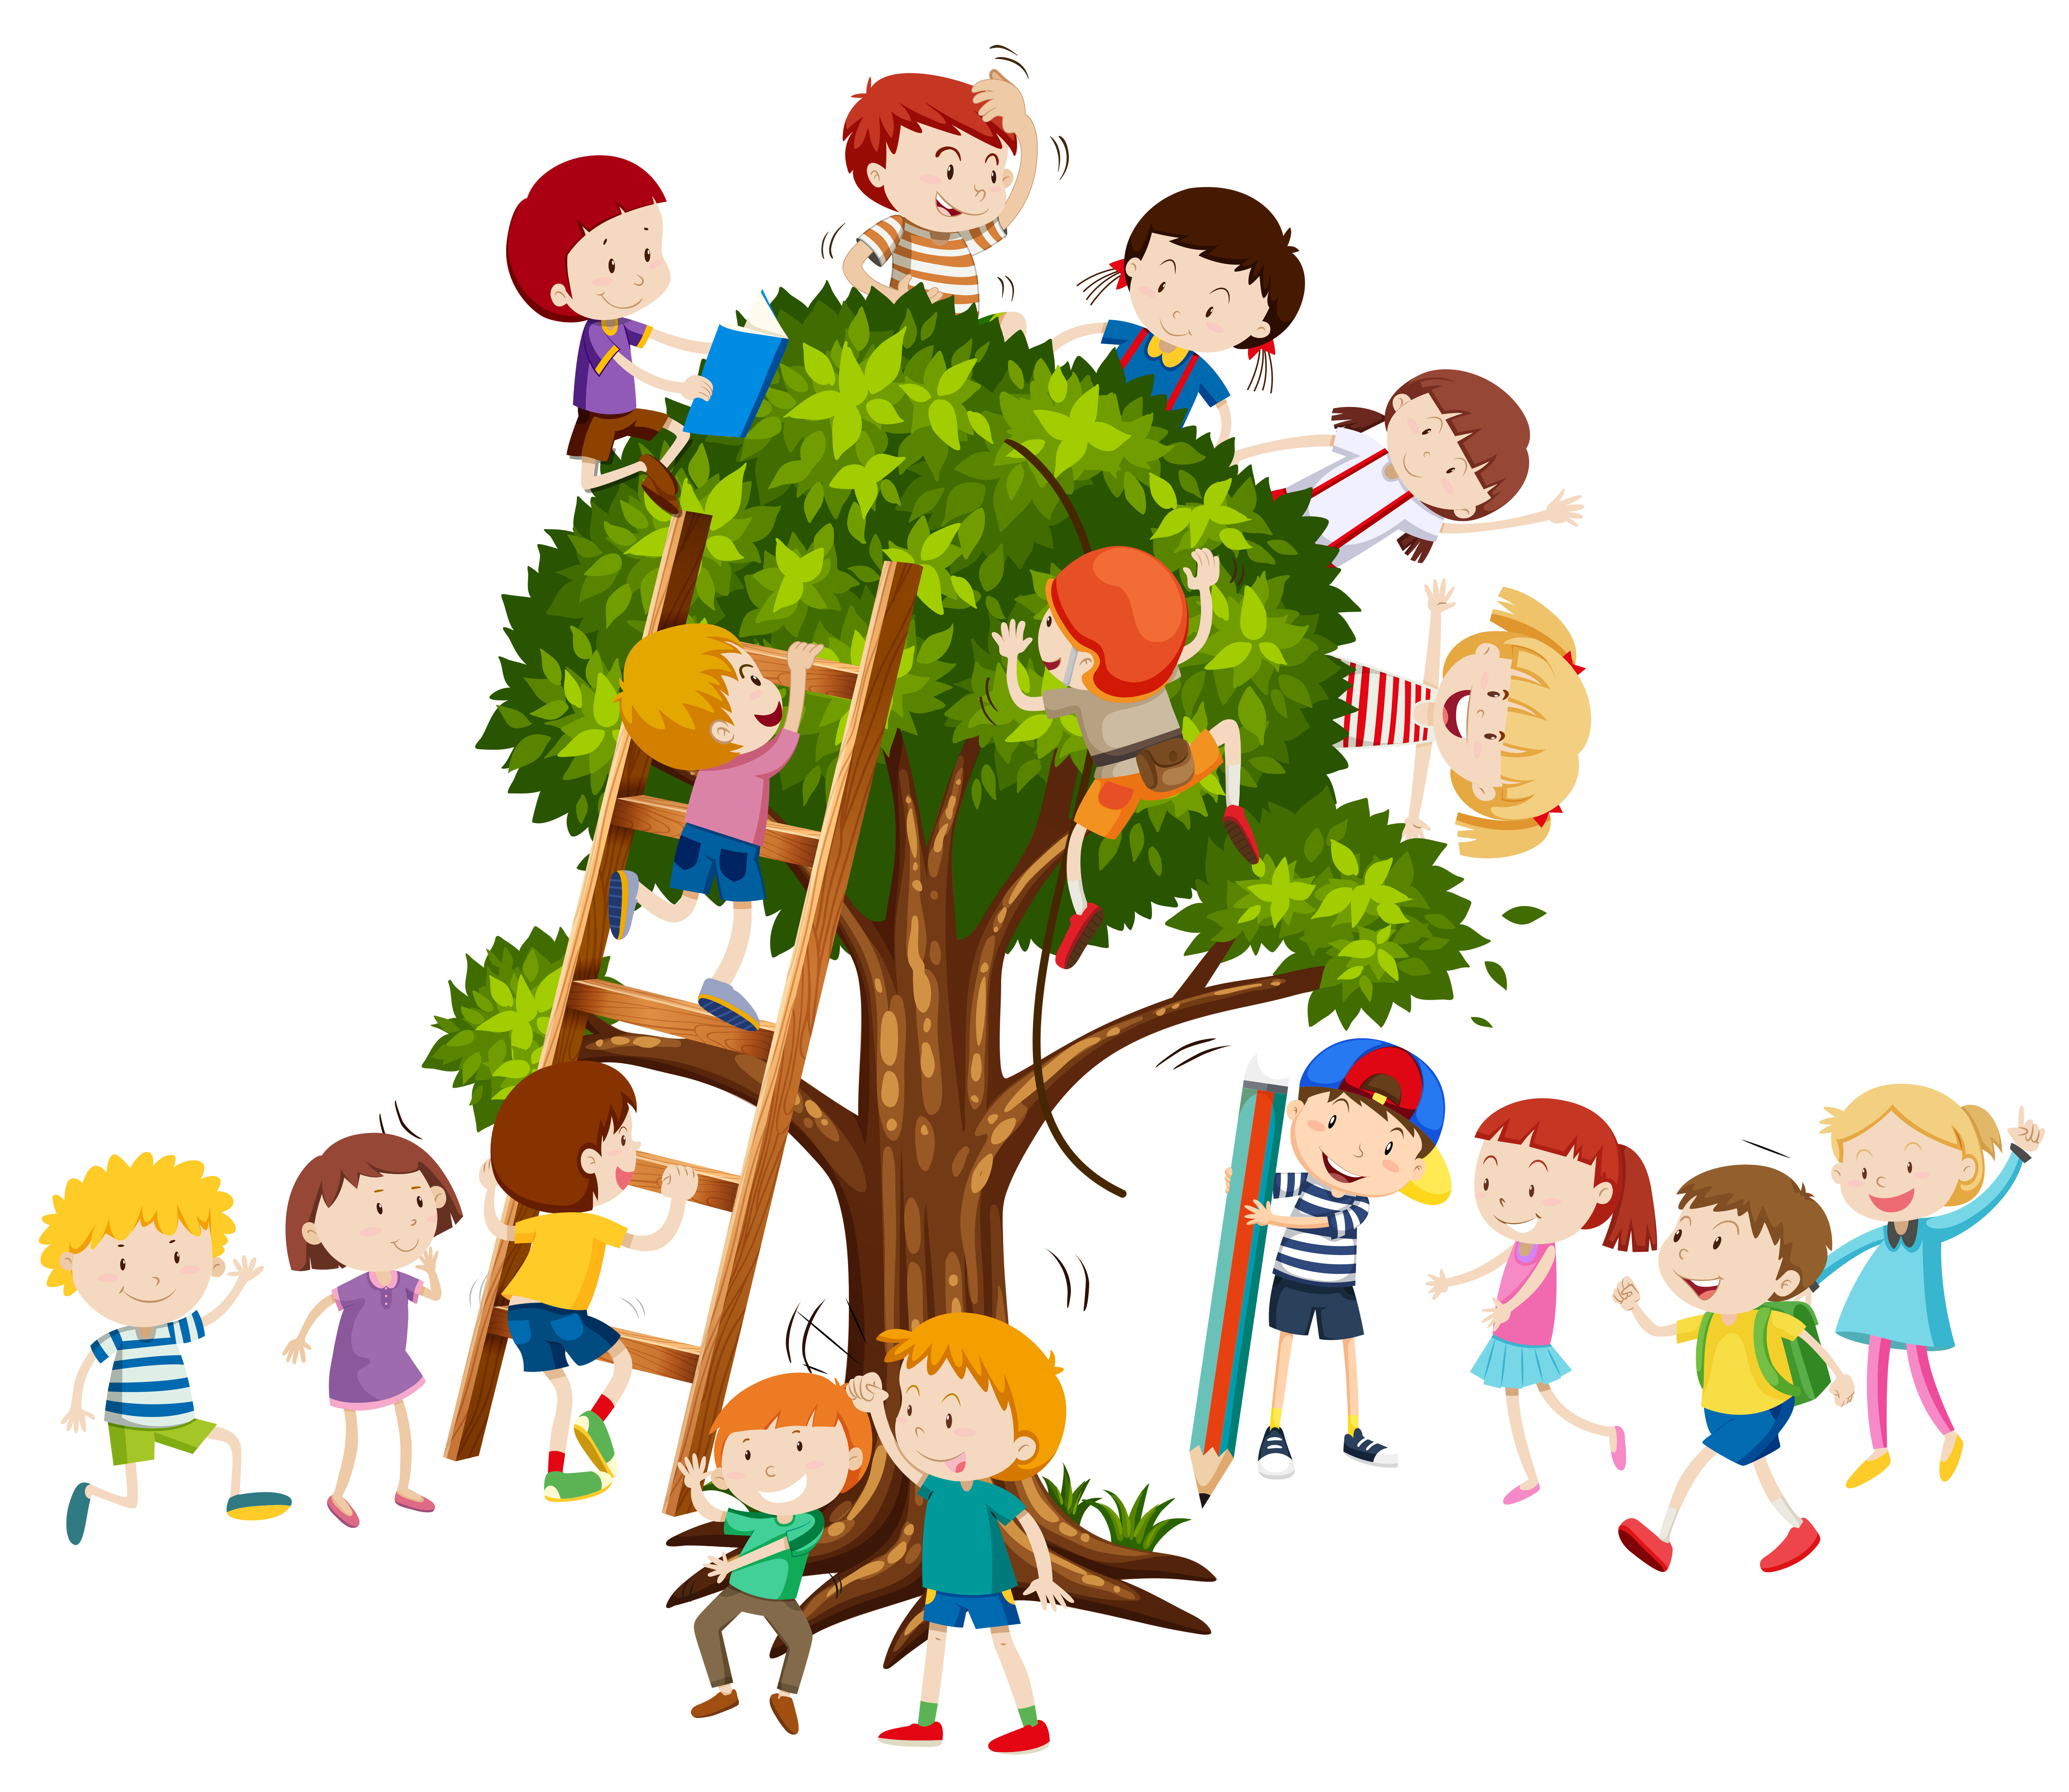 Children Climbing Up The Tree Download Free Vectors Clipart Graphics Vector Art Some bloke wants to know if we've carried out a thorough risk assessment? vecteezy